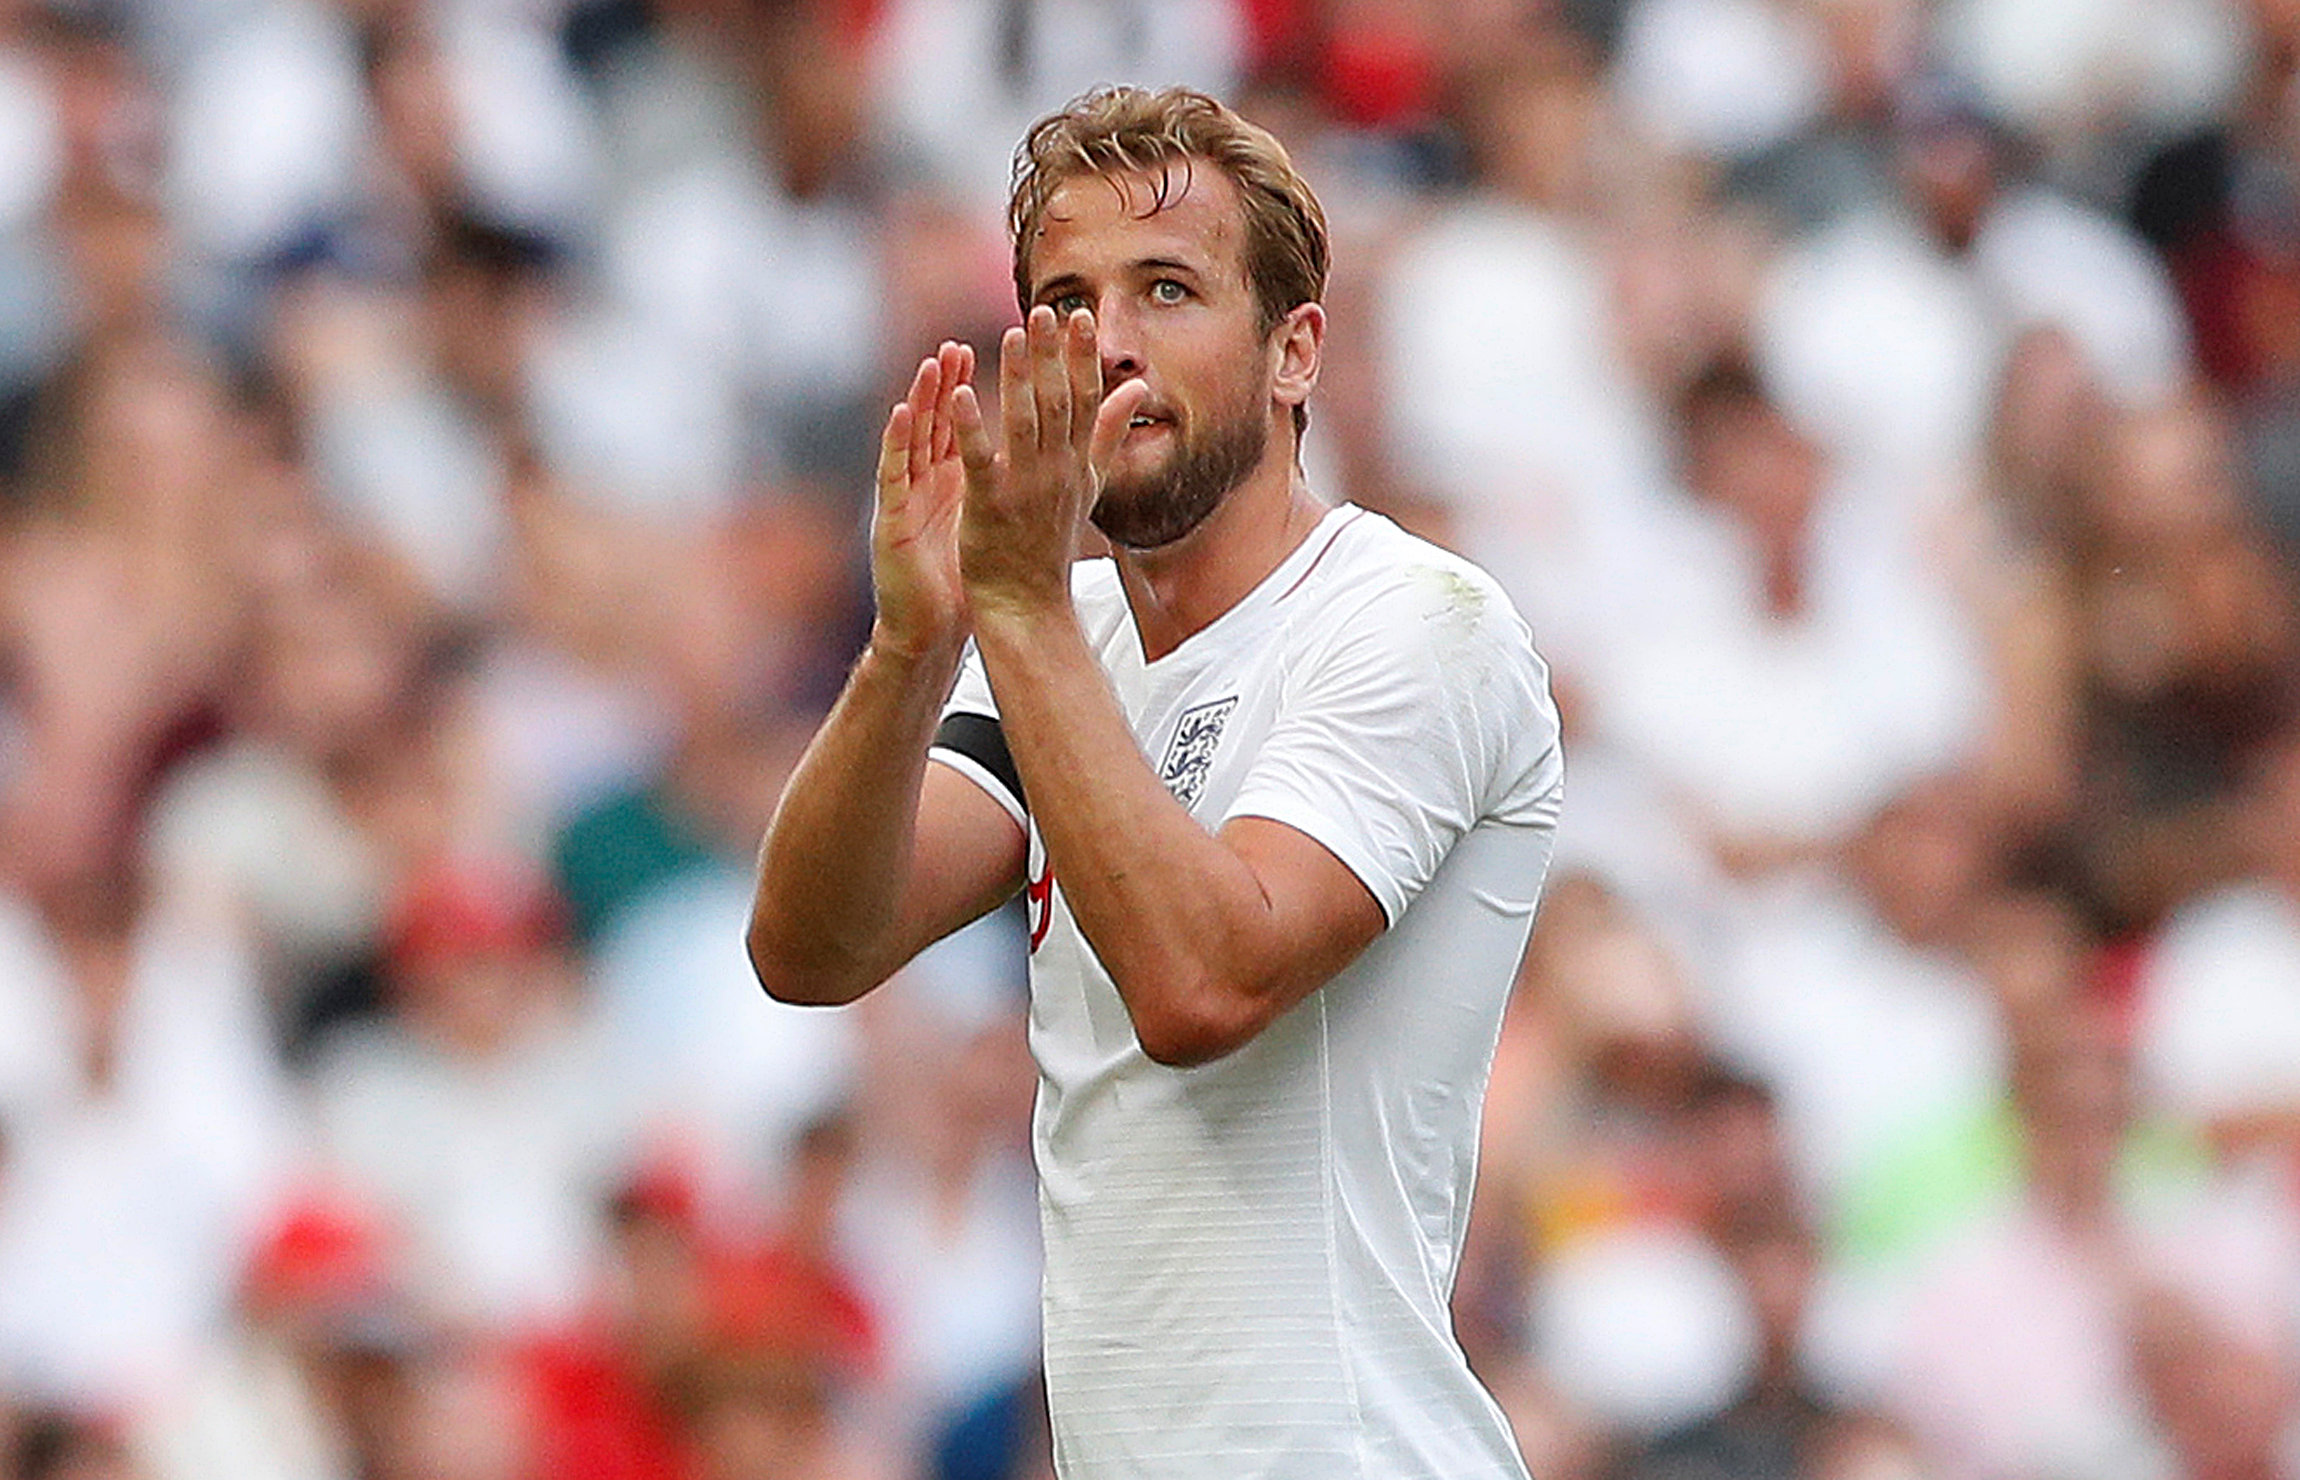 English players to score most goals Harry Kane World Cup 2018